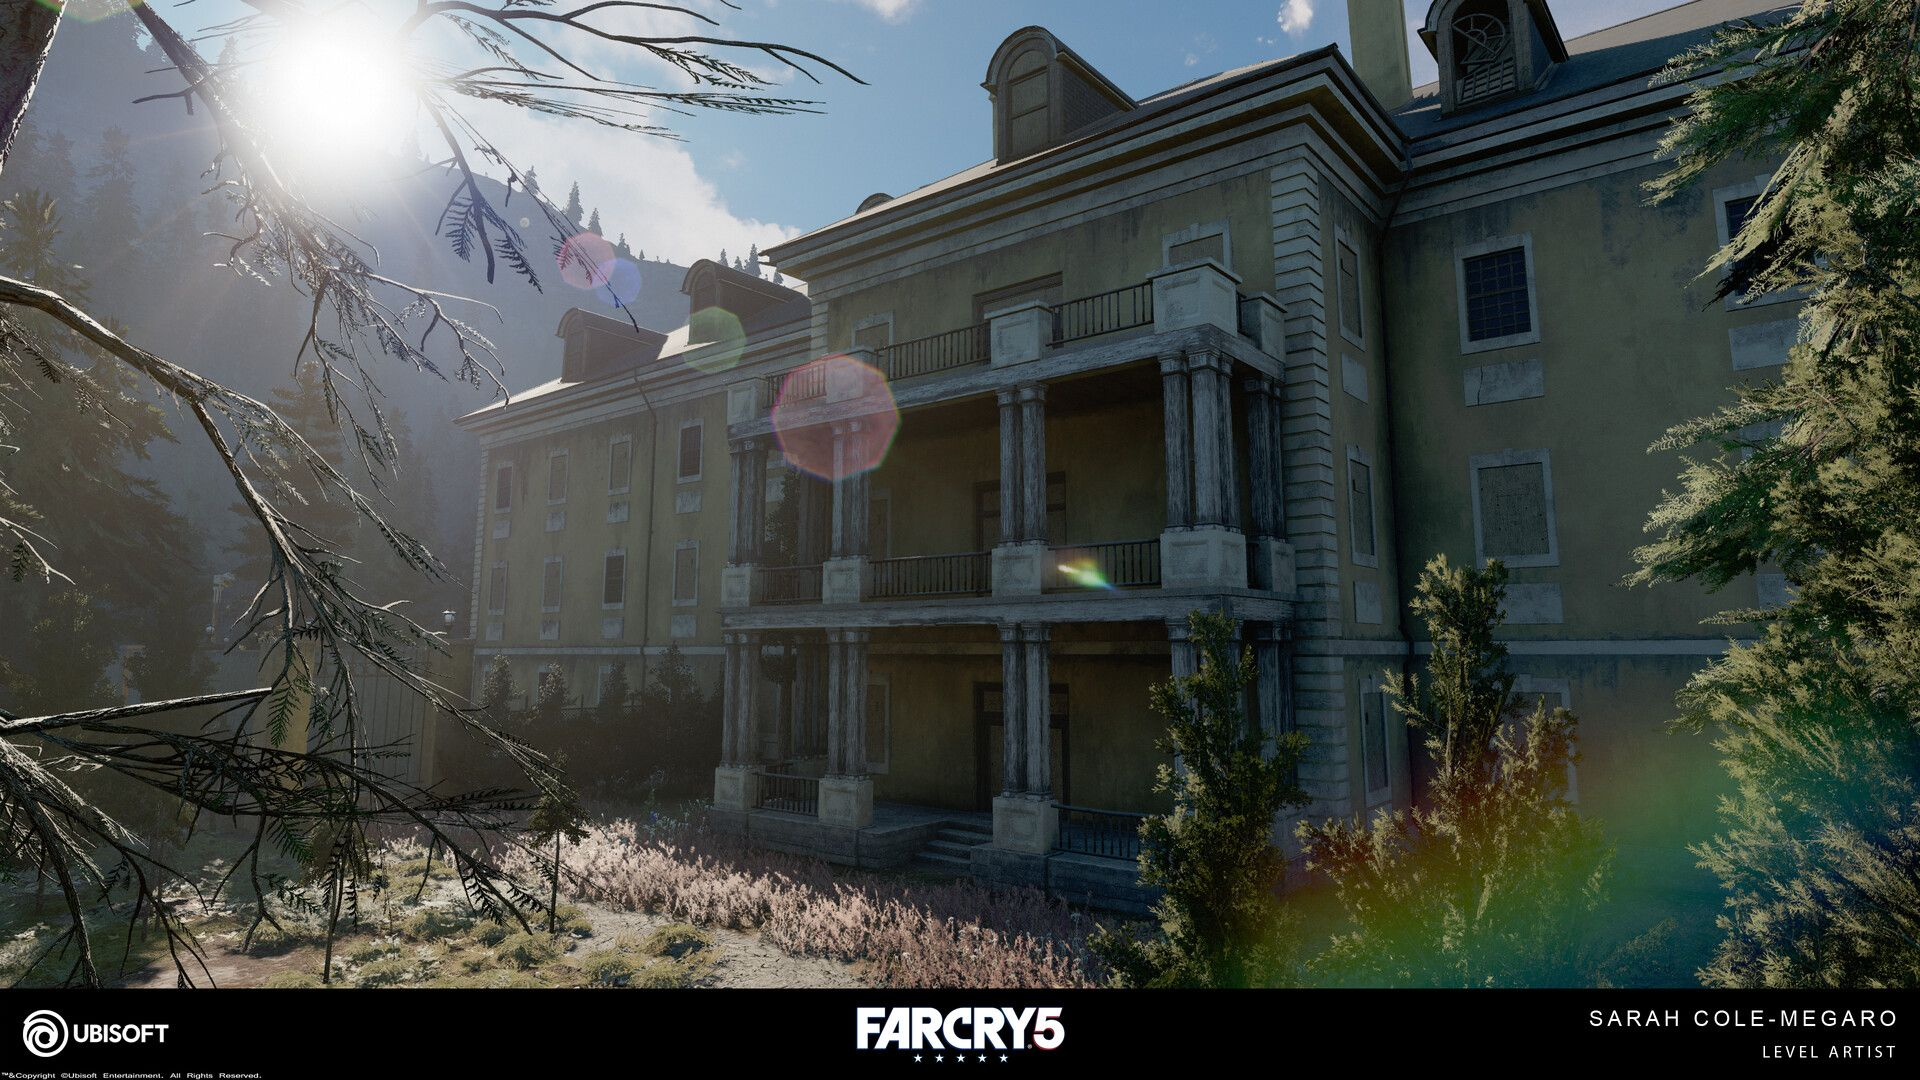 Far Cry 5 By Sarah Cole Megaroi Was The Level Artist Responsible For The St Francis Veterans Hospital Location And F A N G Veteran Hospital Far Cry 5 Hospital